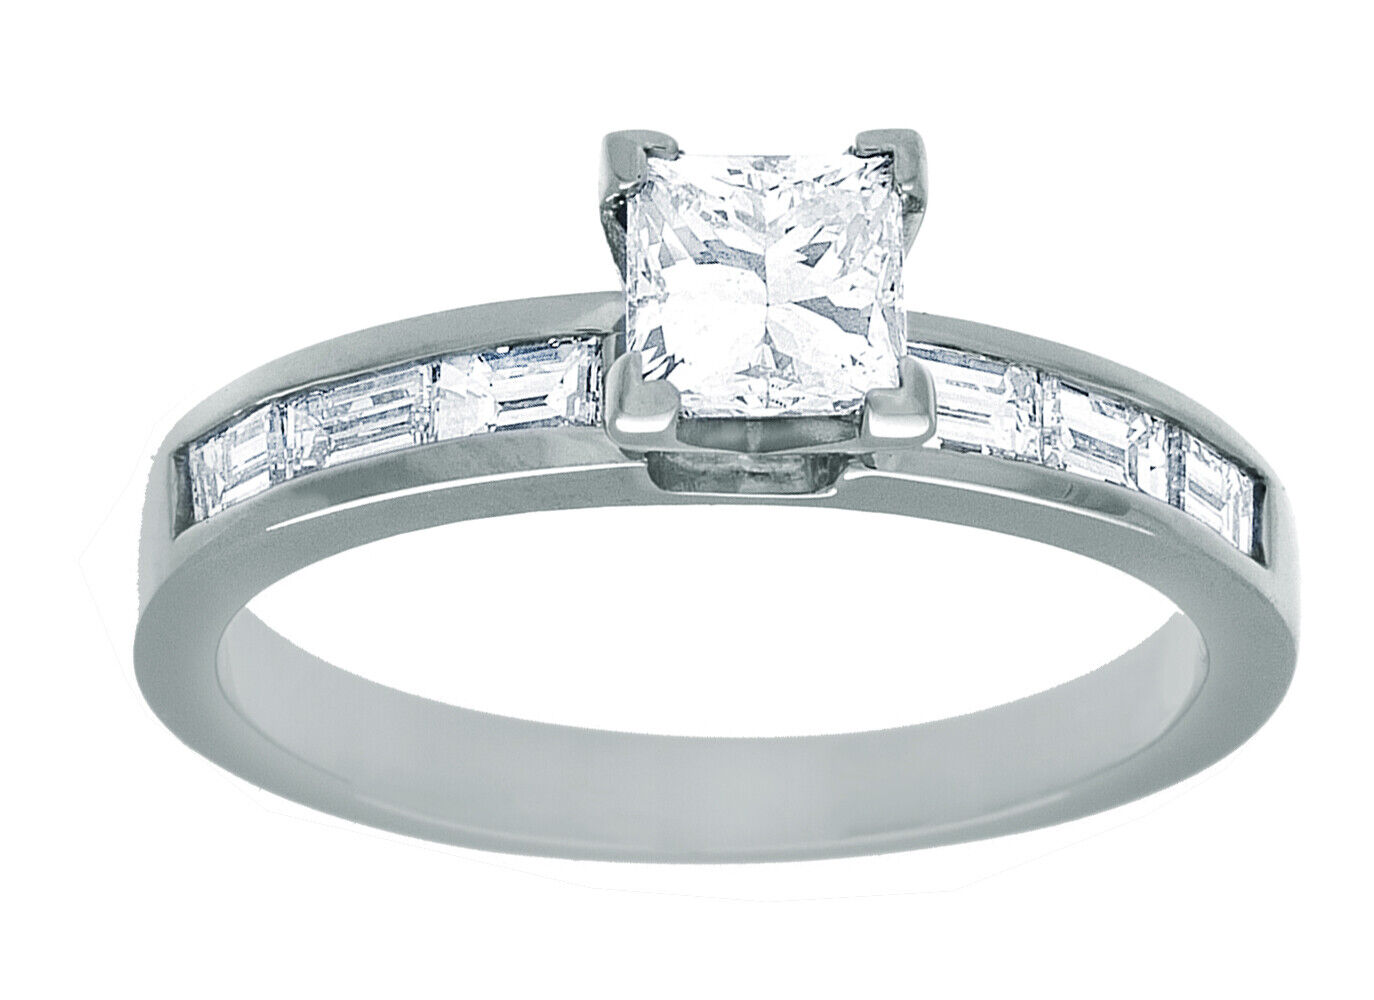 GIA Certified Diamond Engagement Ring 1.42 Ct Princess Cut 18k White Gold